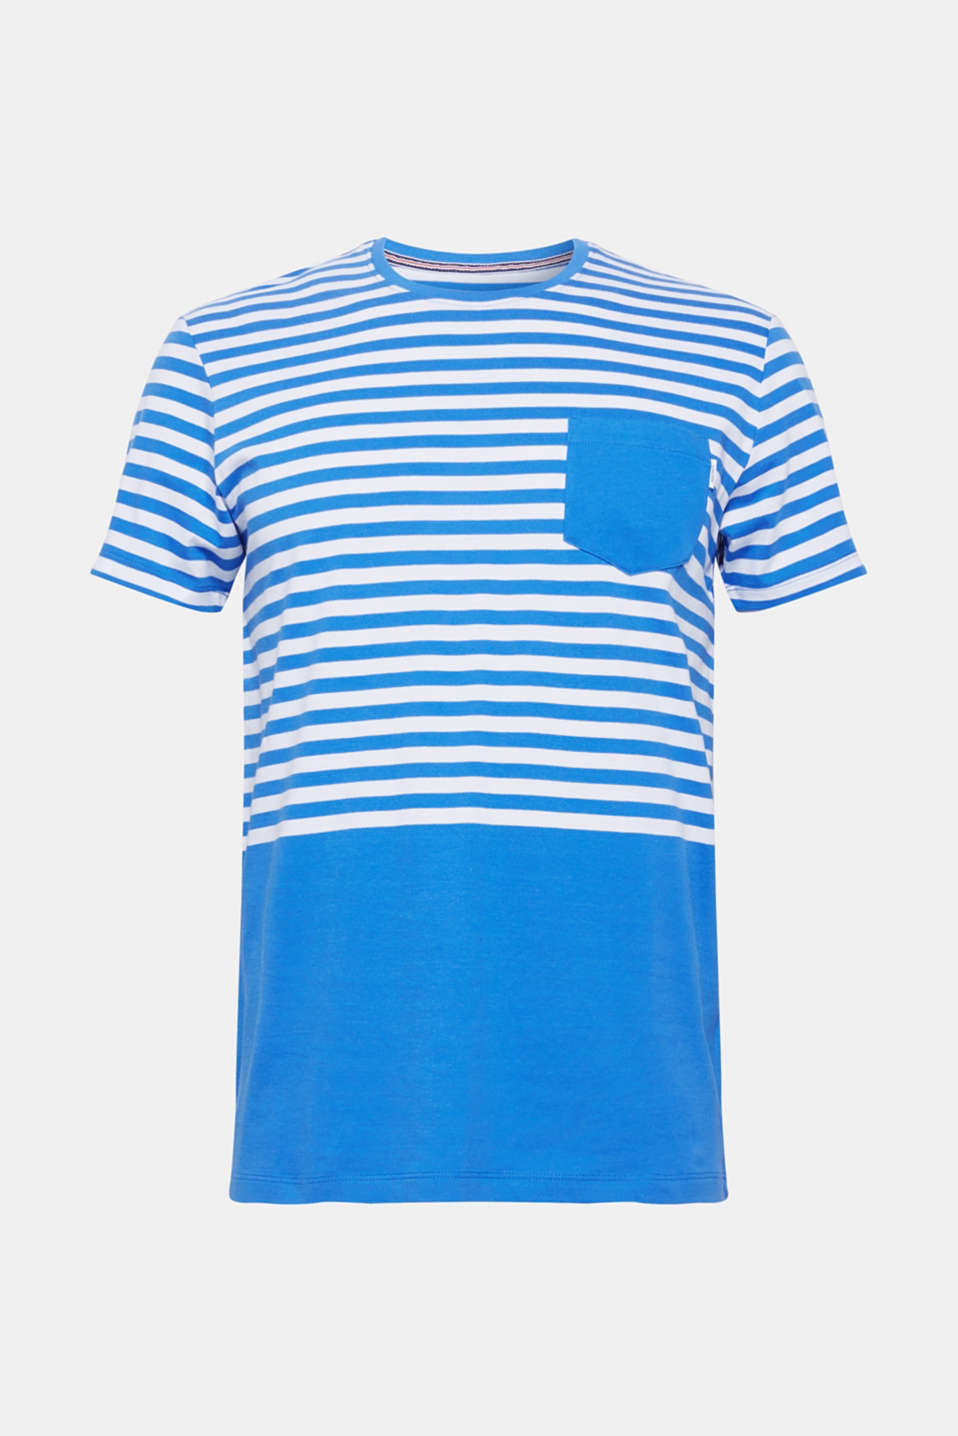 Jersey T-shirt with stripes, 100% cotton, BLUE, detail image number 4